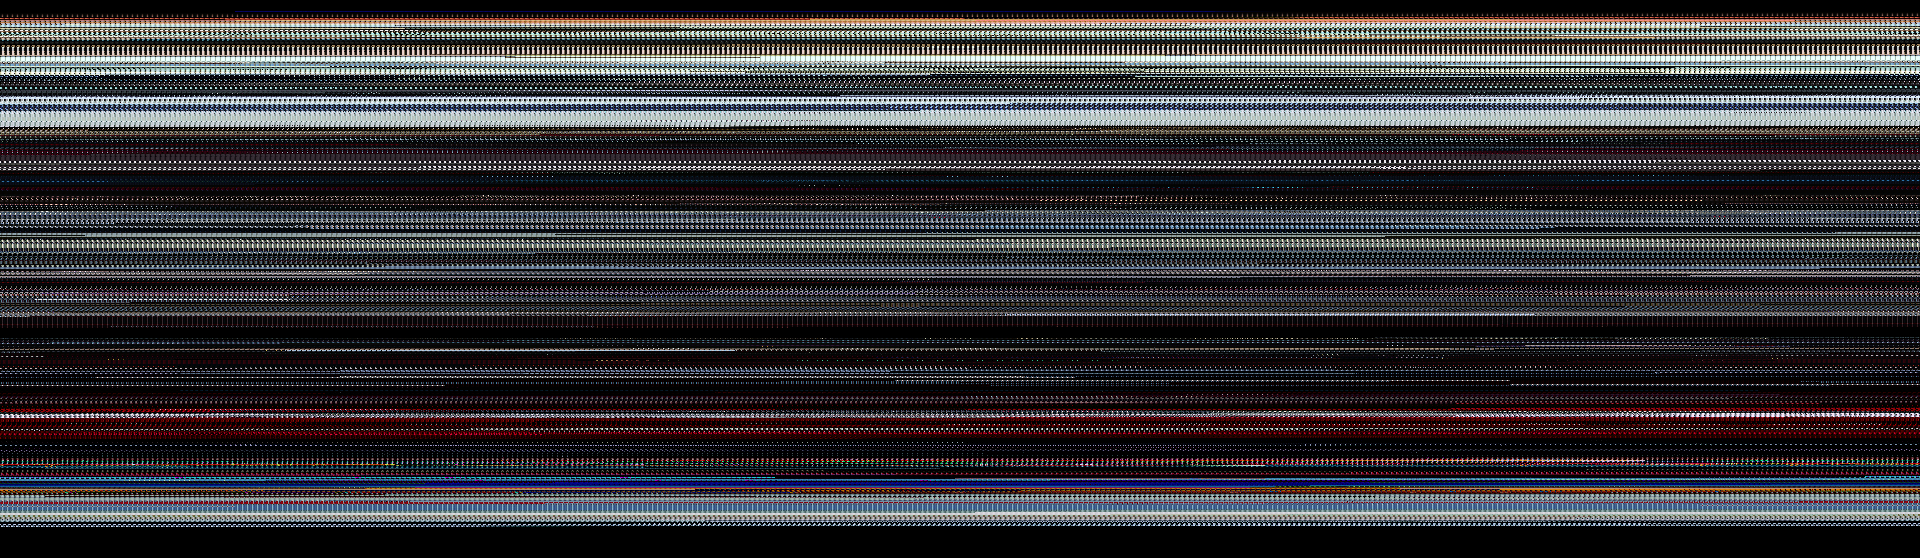 2001: A Space Oddysey compressed so that each frame is a single 5x5 pixel